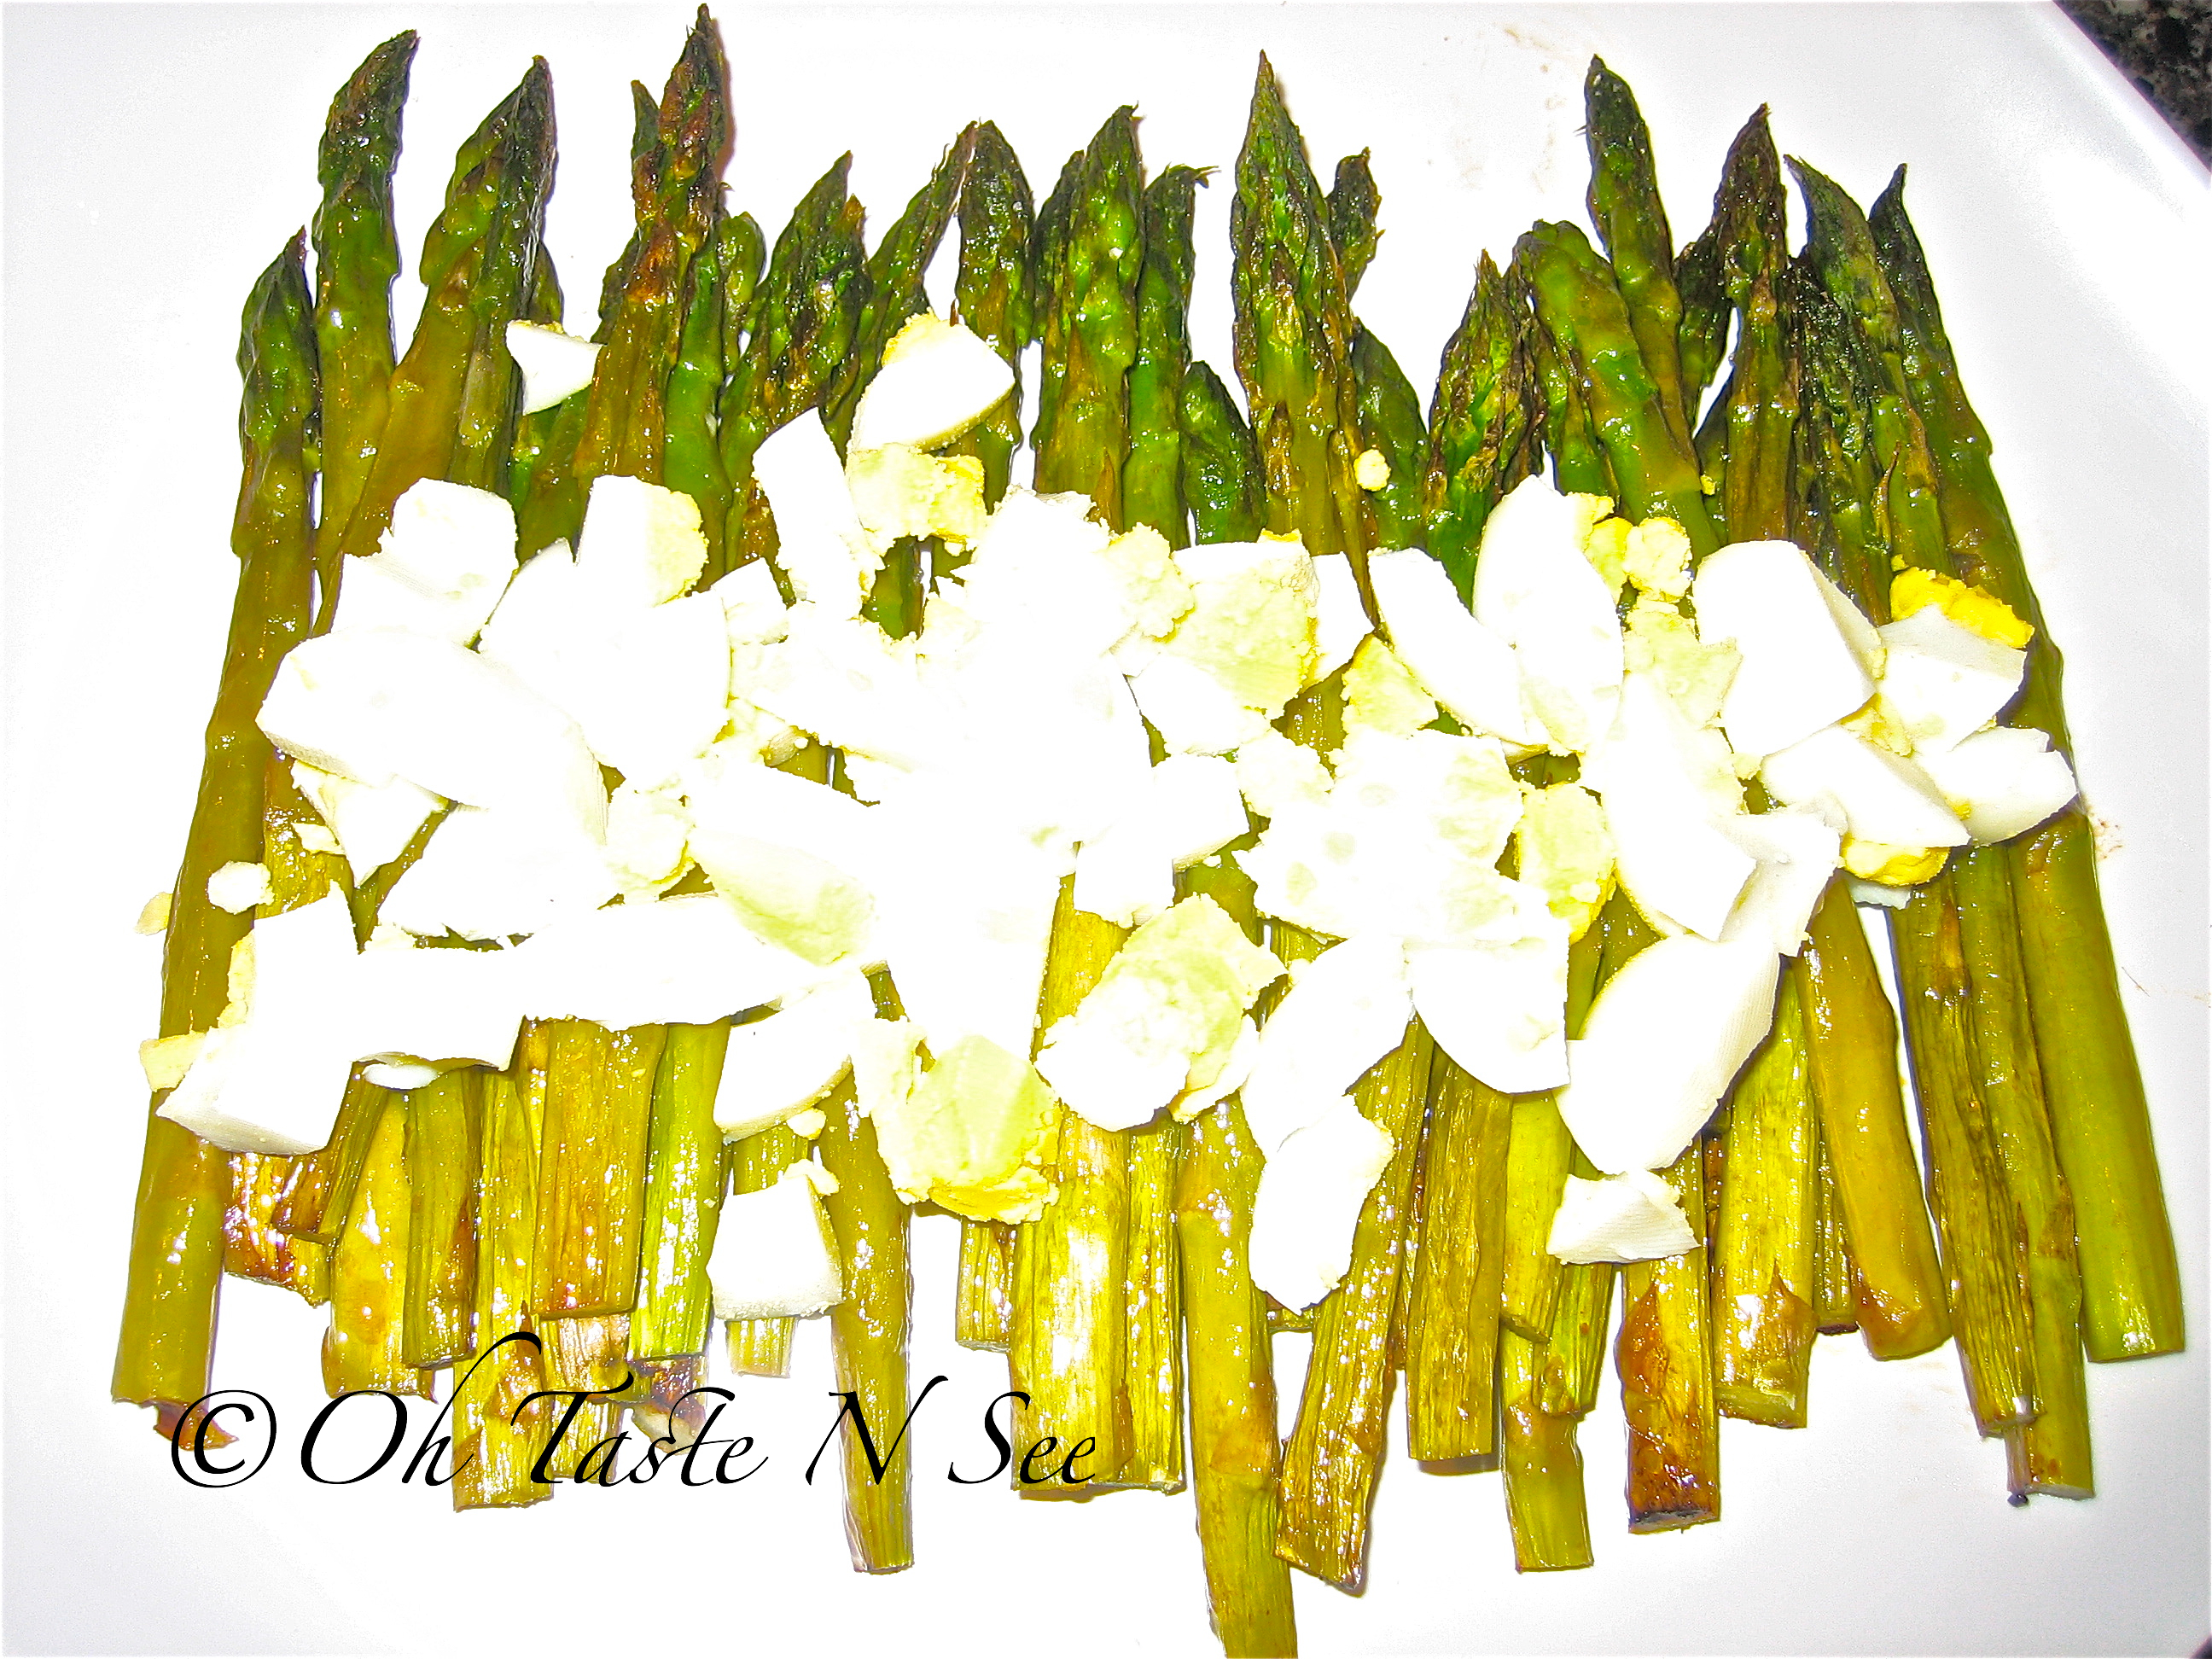 Roasted Asparagus with chopped eggs